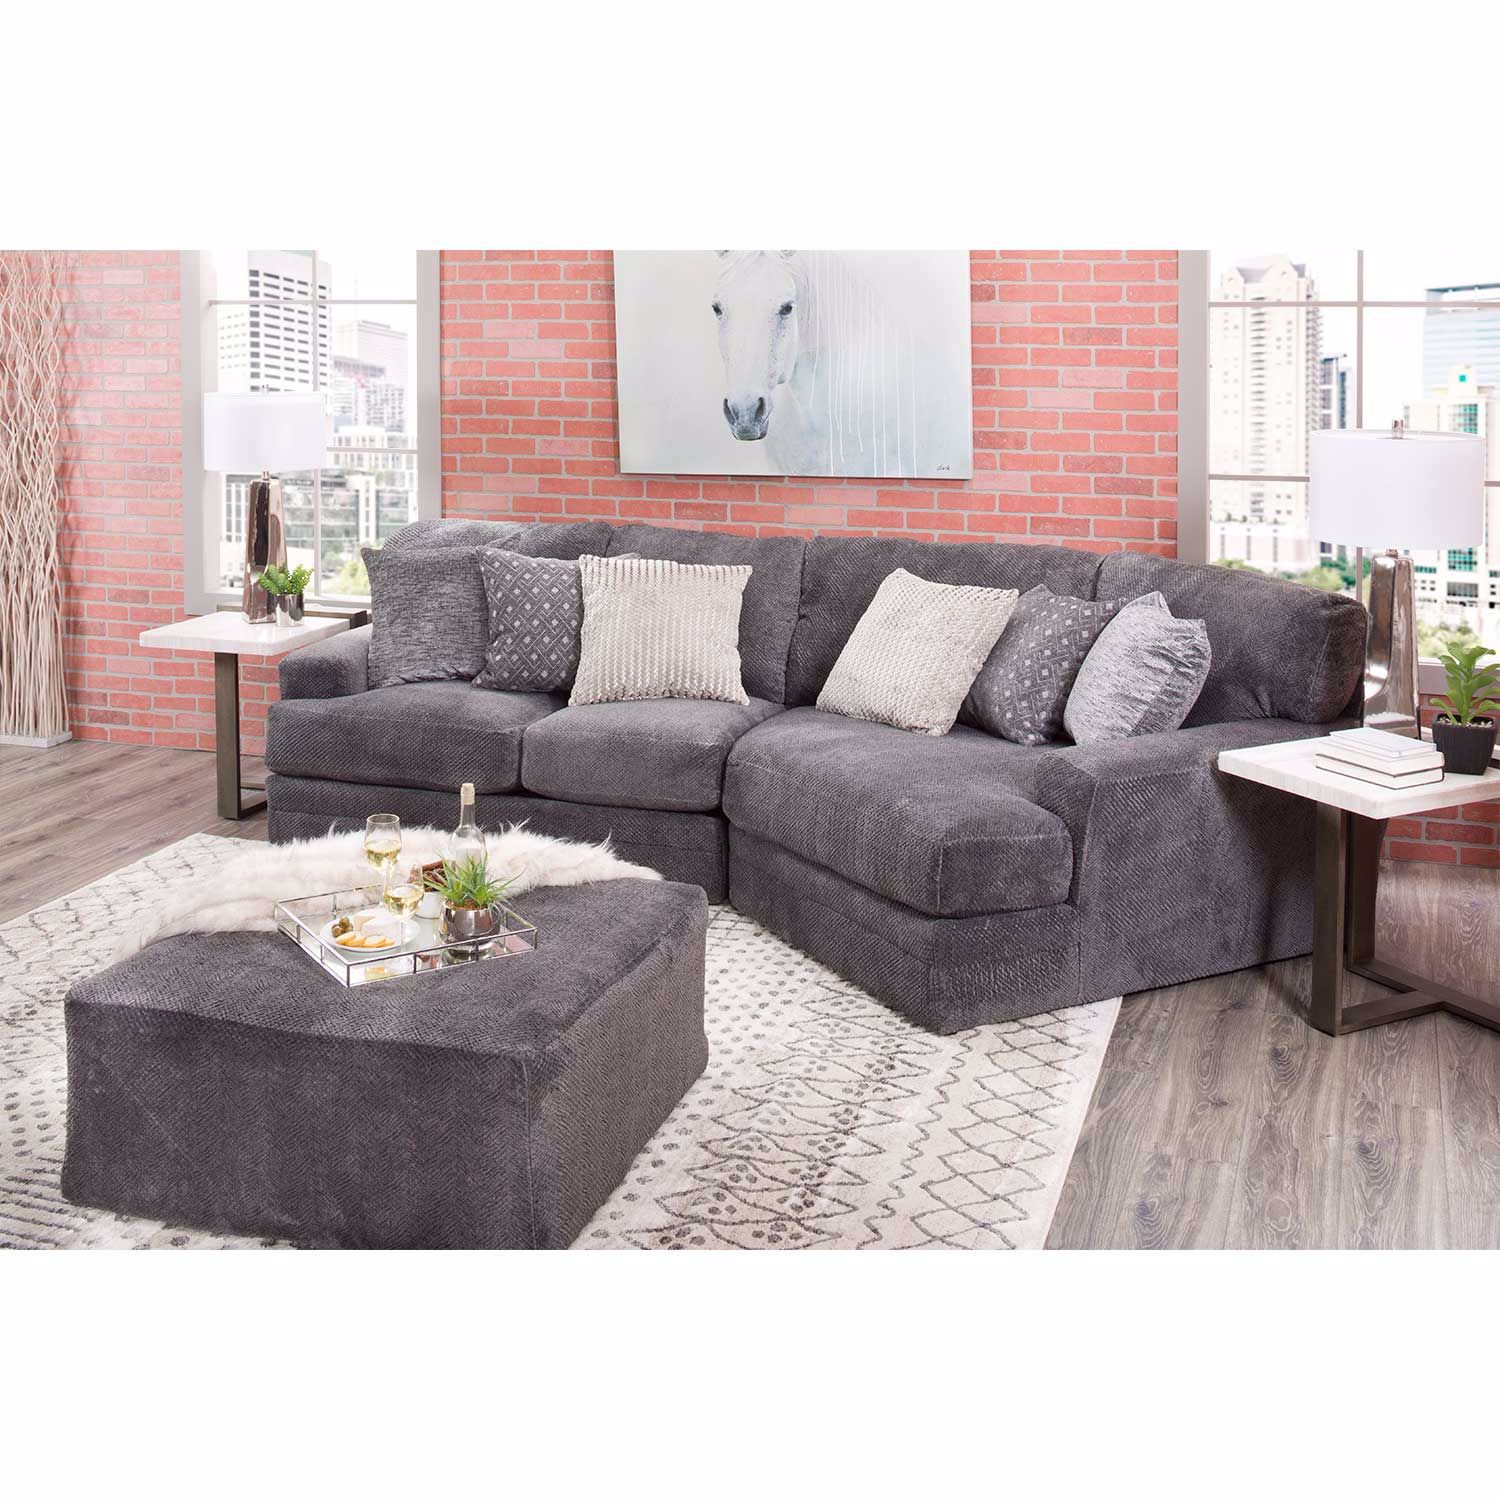 Picture of Mammoth 2 Piece Sectional with RAF Wedge